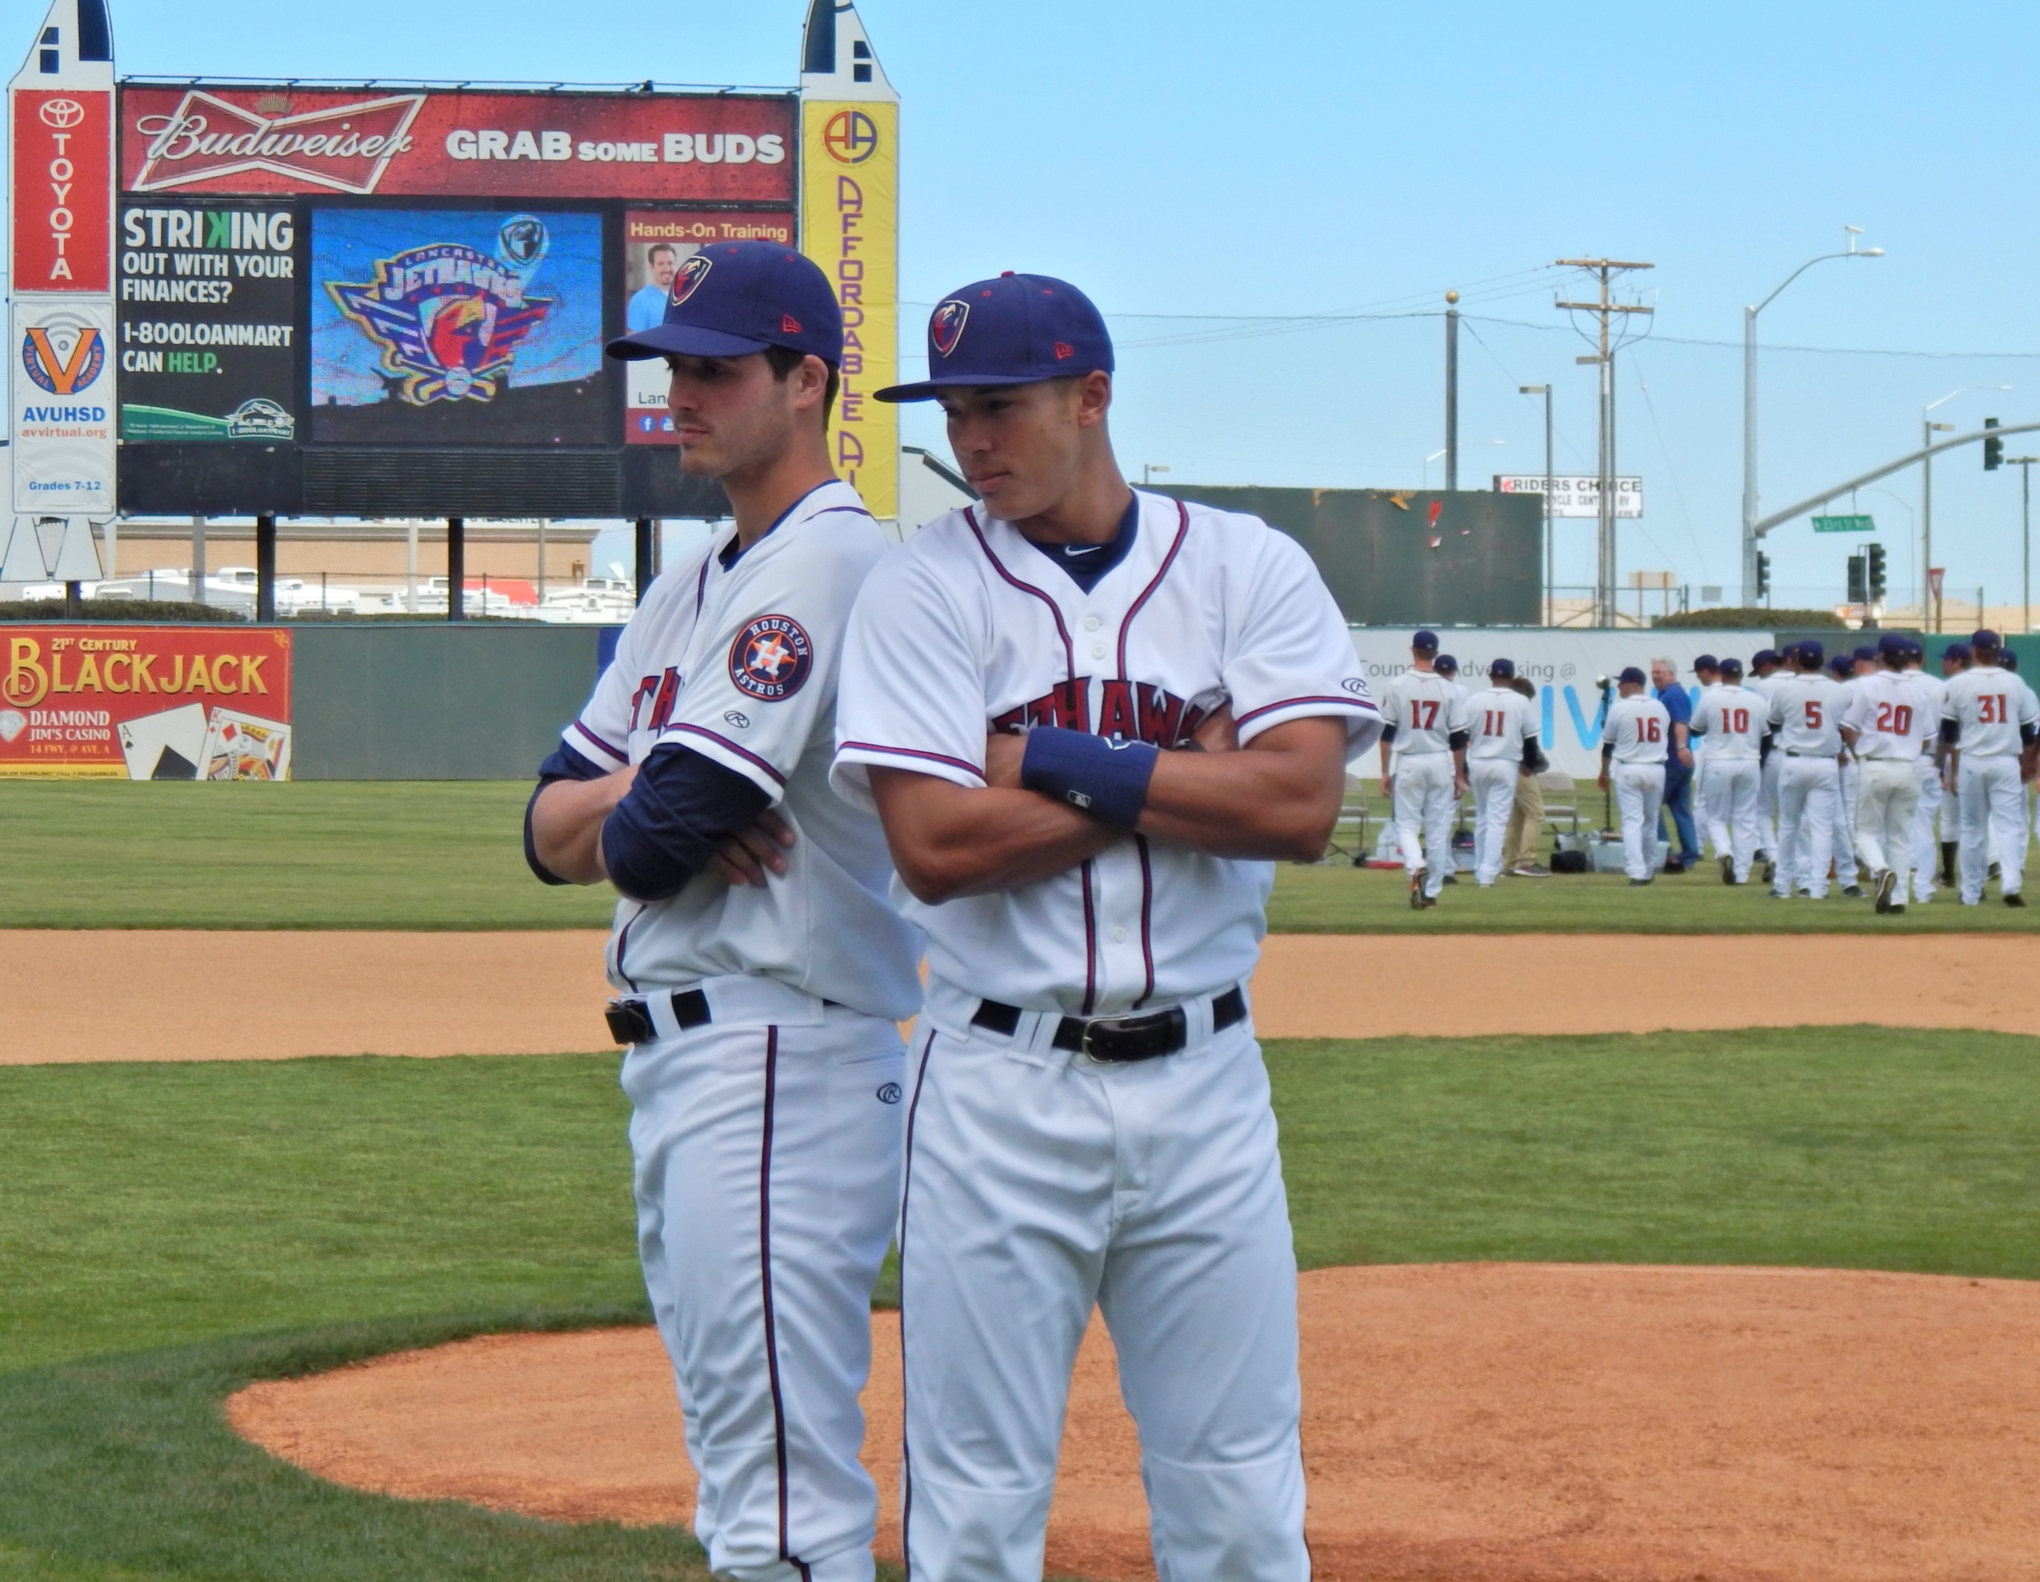 Carlos Correa and Mark Appel pose together during the Lancaster Jethawks Media Day.